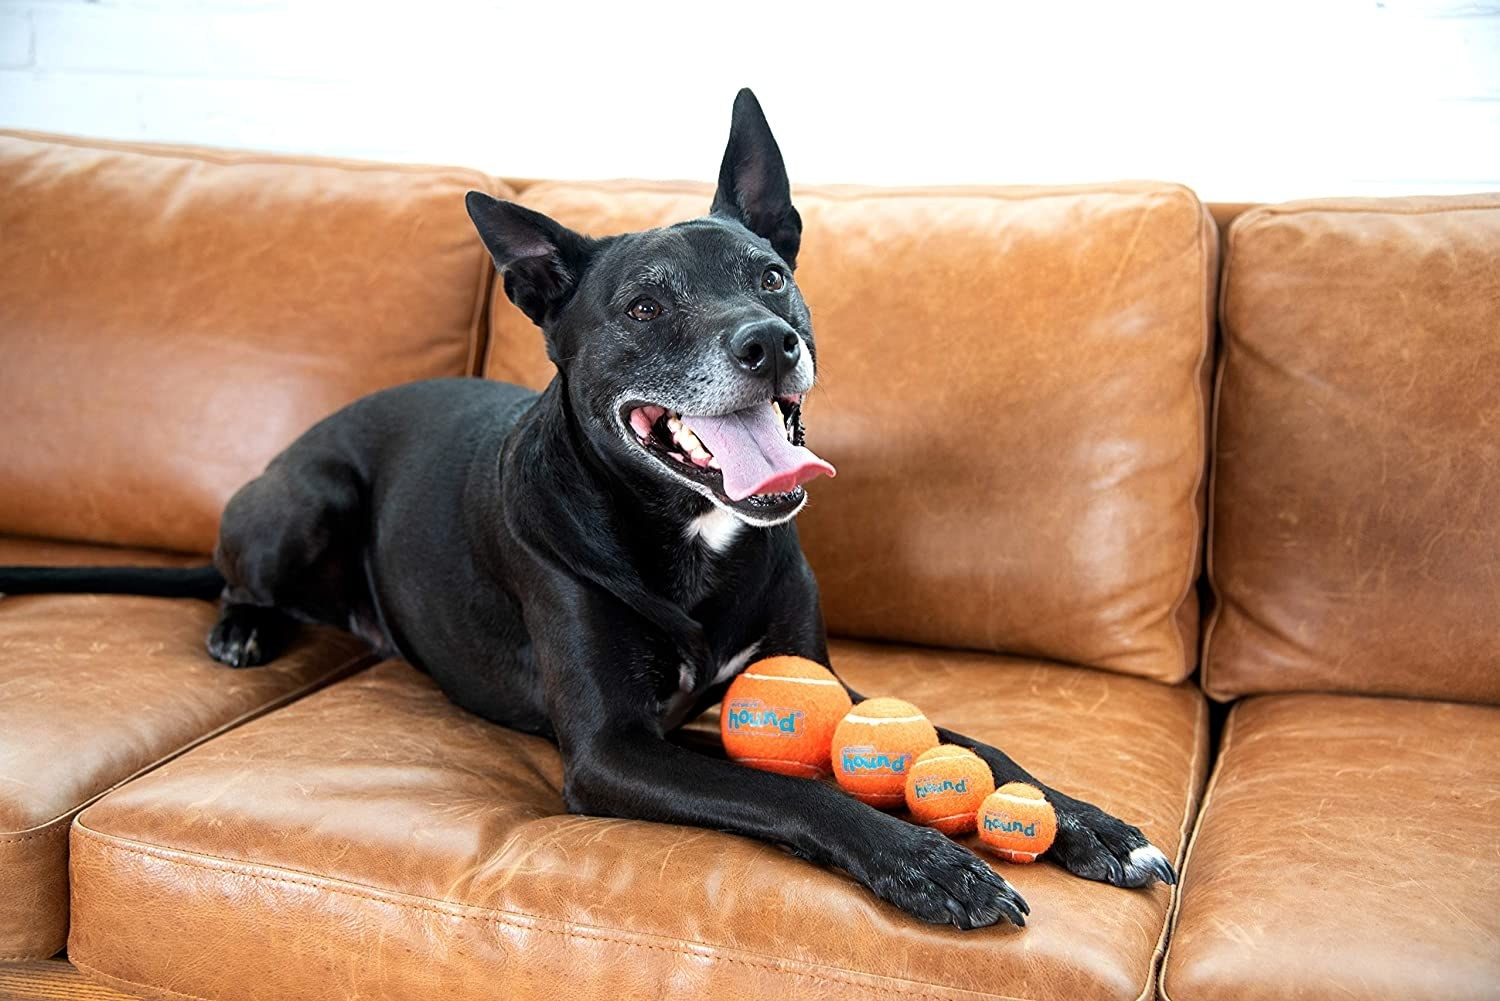 A dog on a couch with four different-sized tennis balls